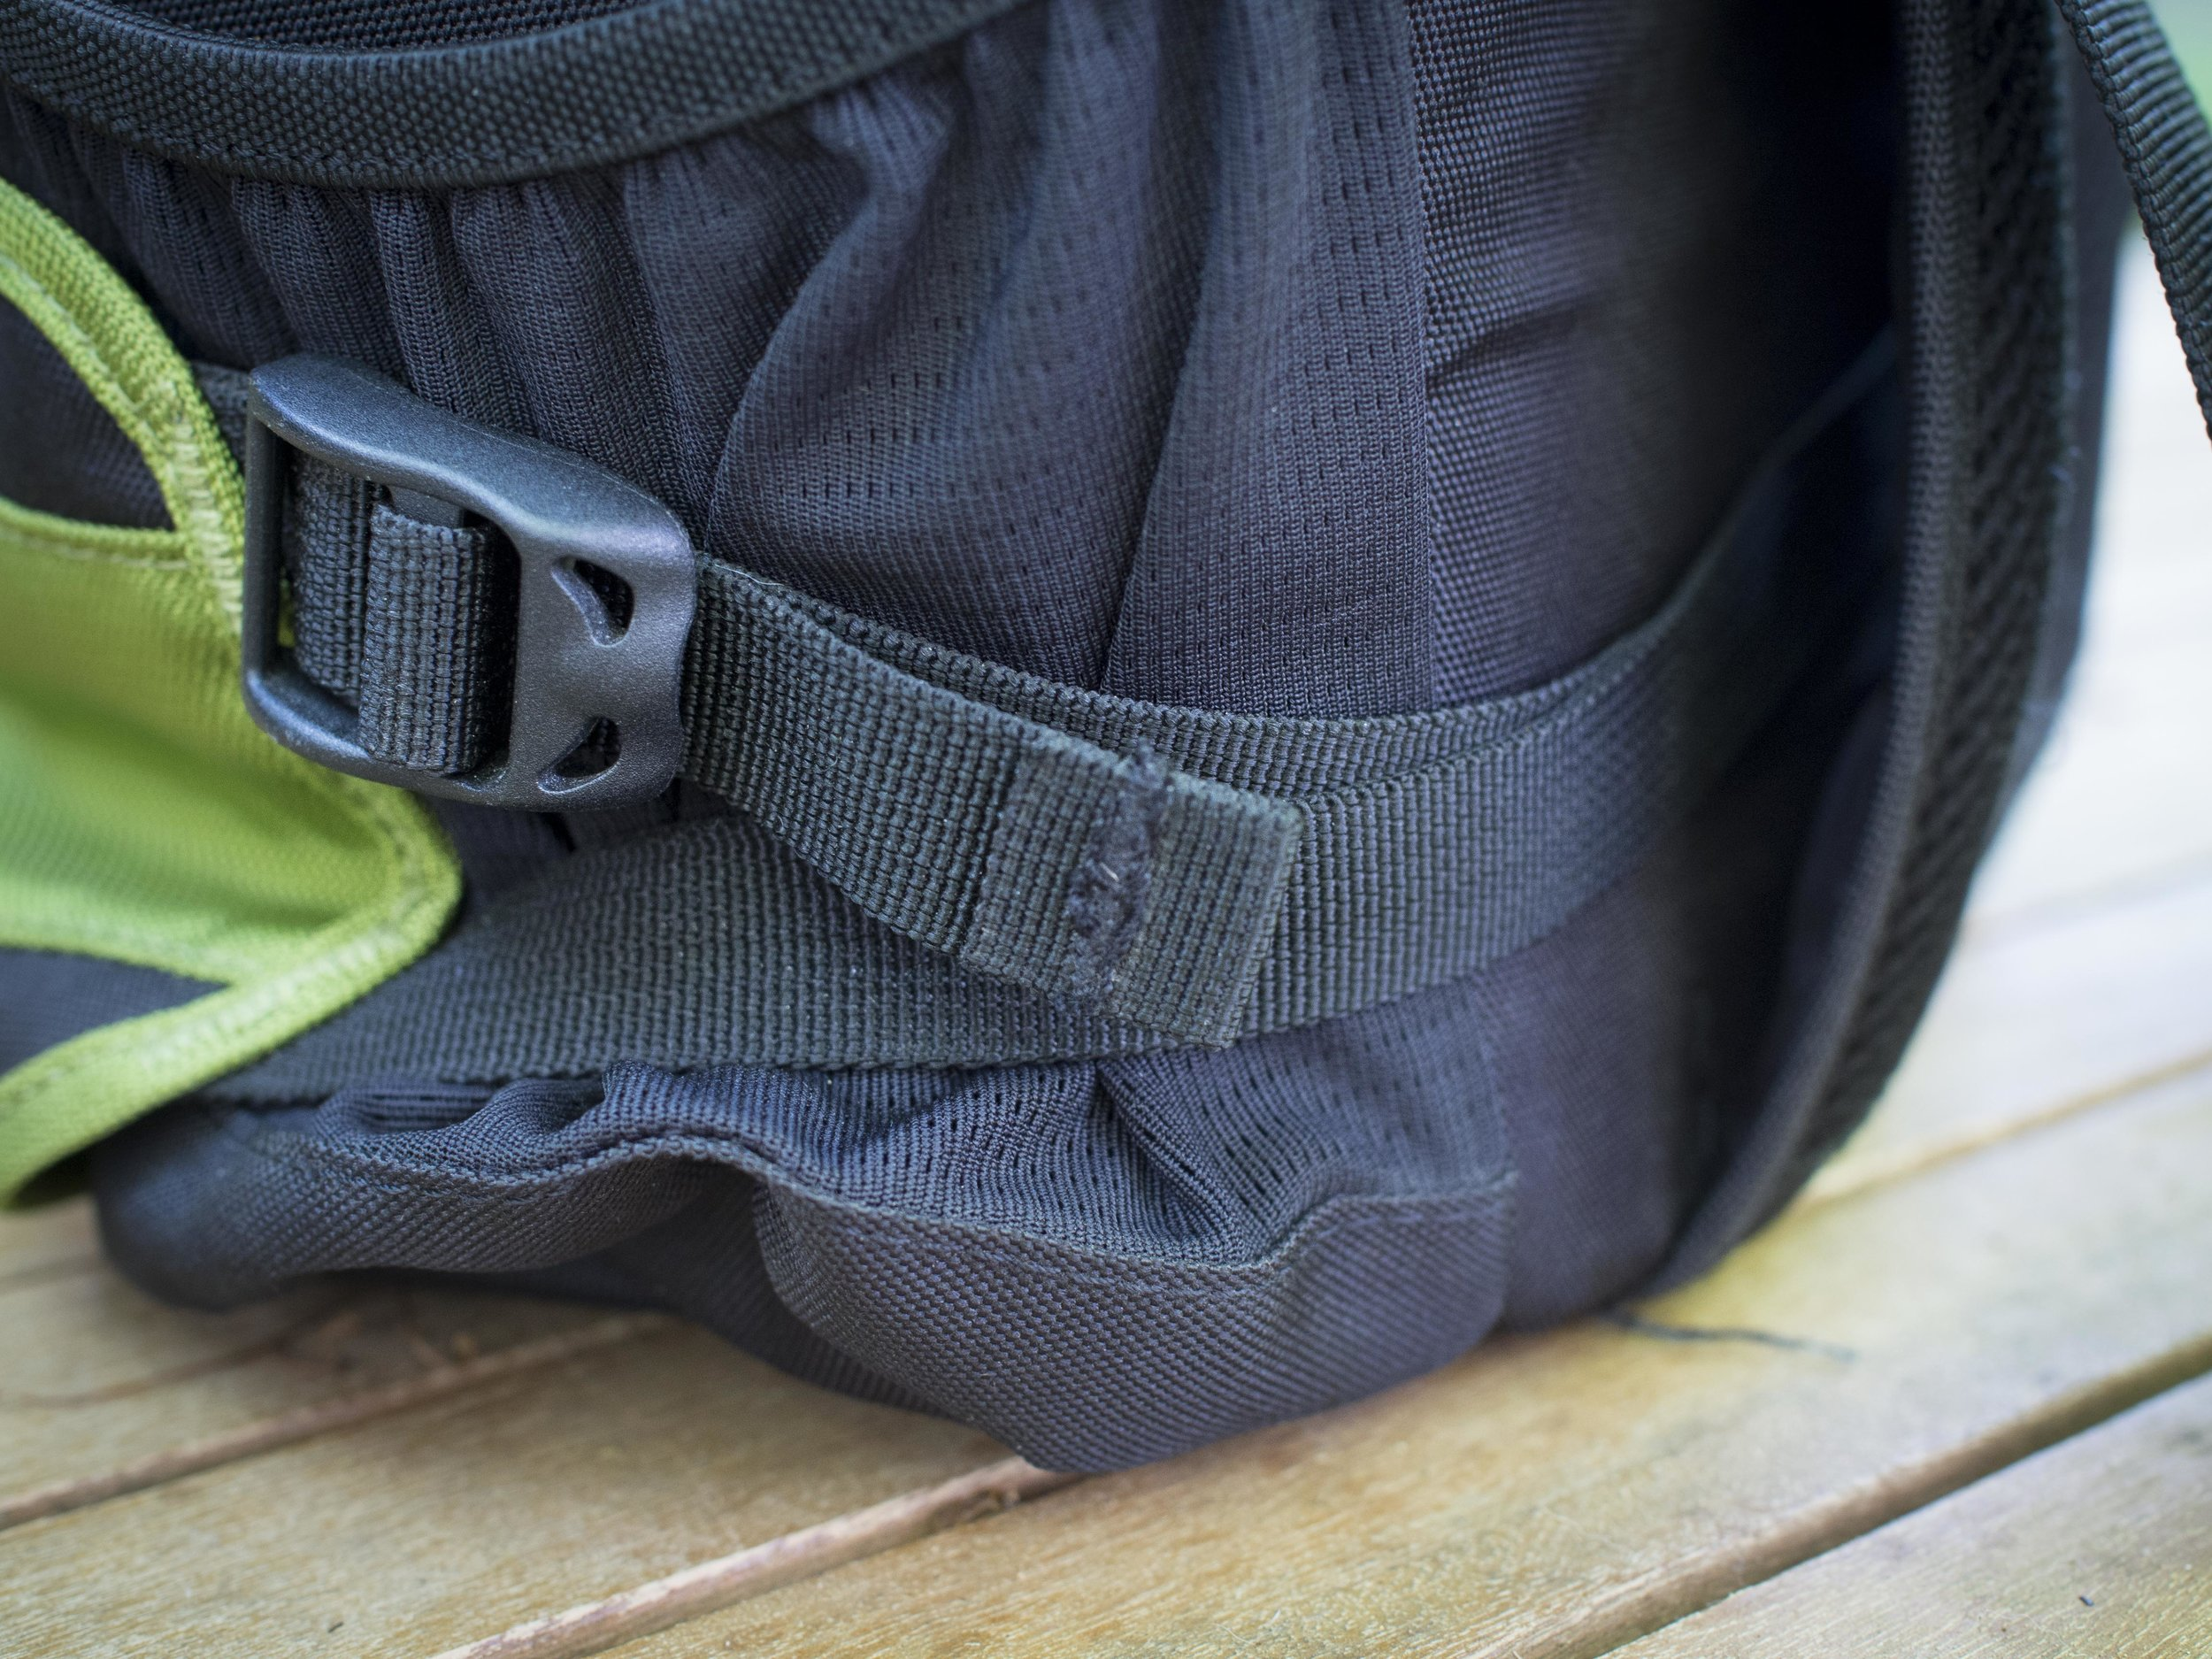 Under the strap at each end is the standard water bottle pocket which could be used as small lens pouches with some padding added.